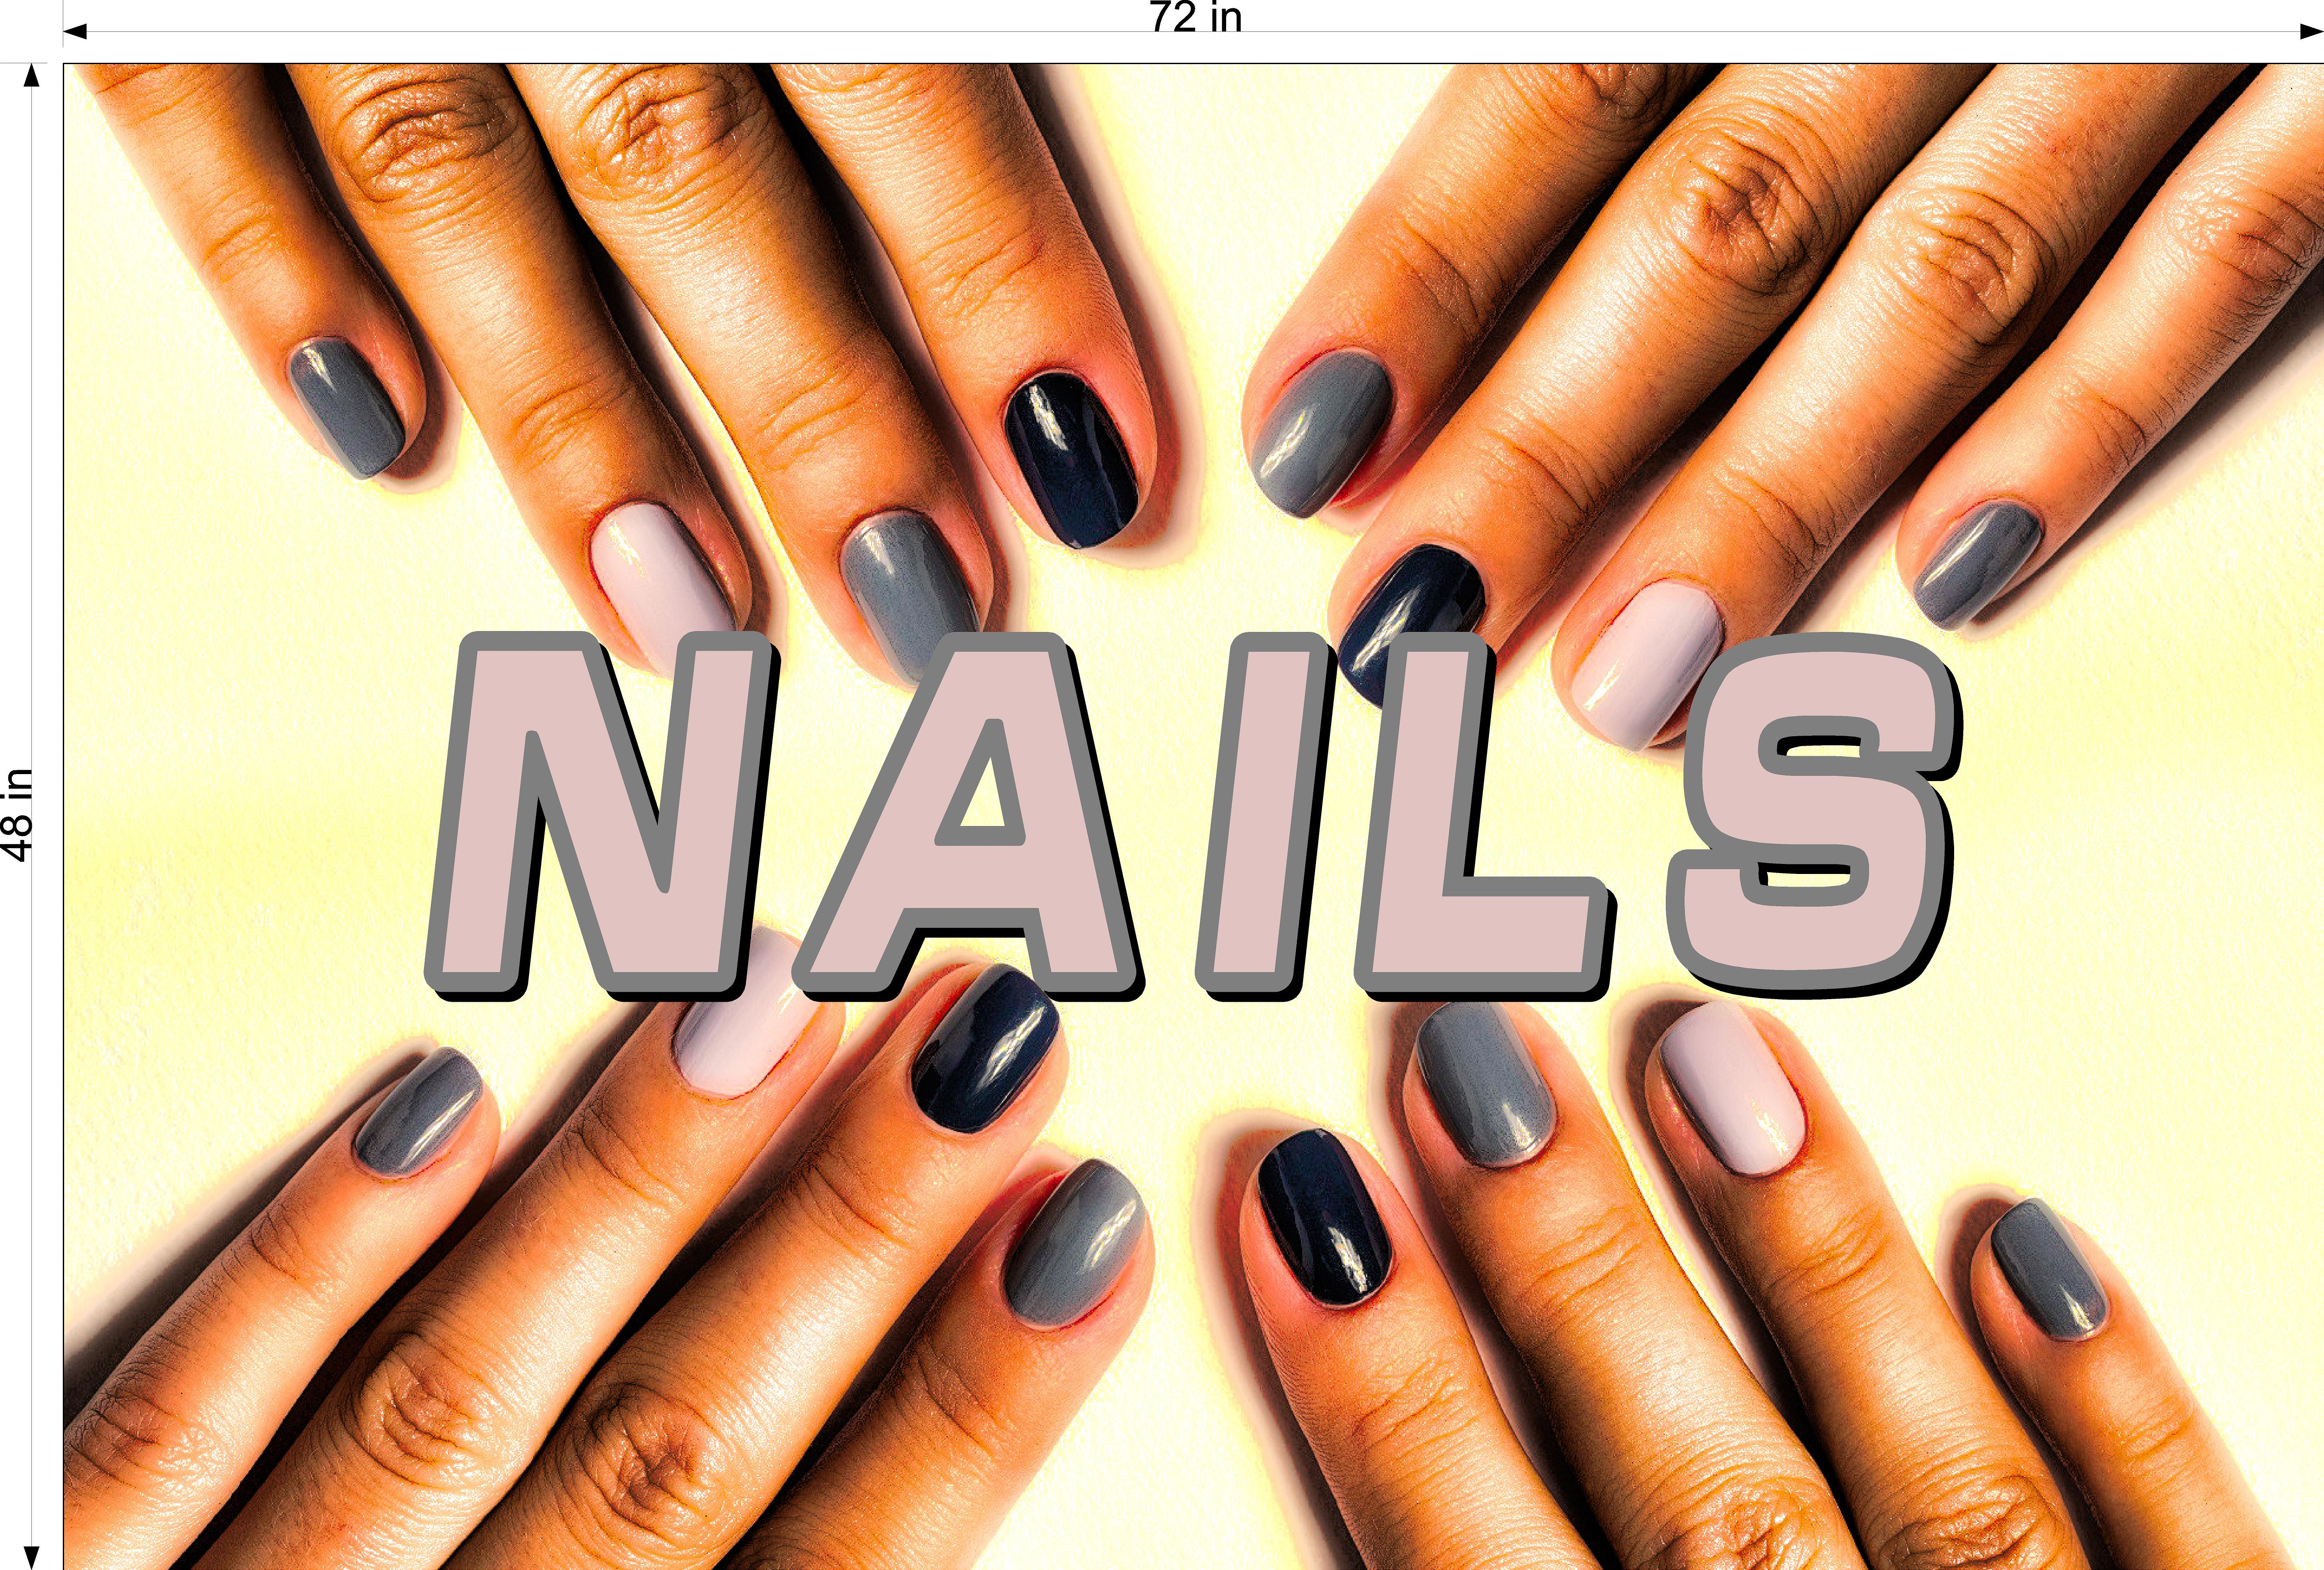 Nails 12 Perforated Mesh One Way Vision See-Through Window Vinyl Salon Sign Horizontal